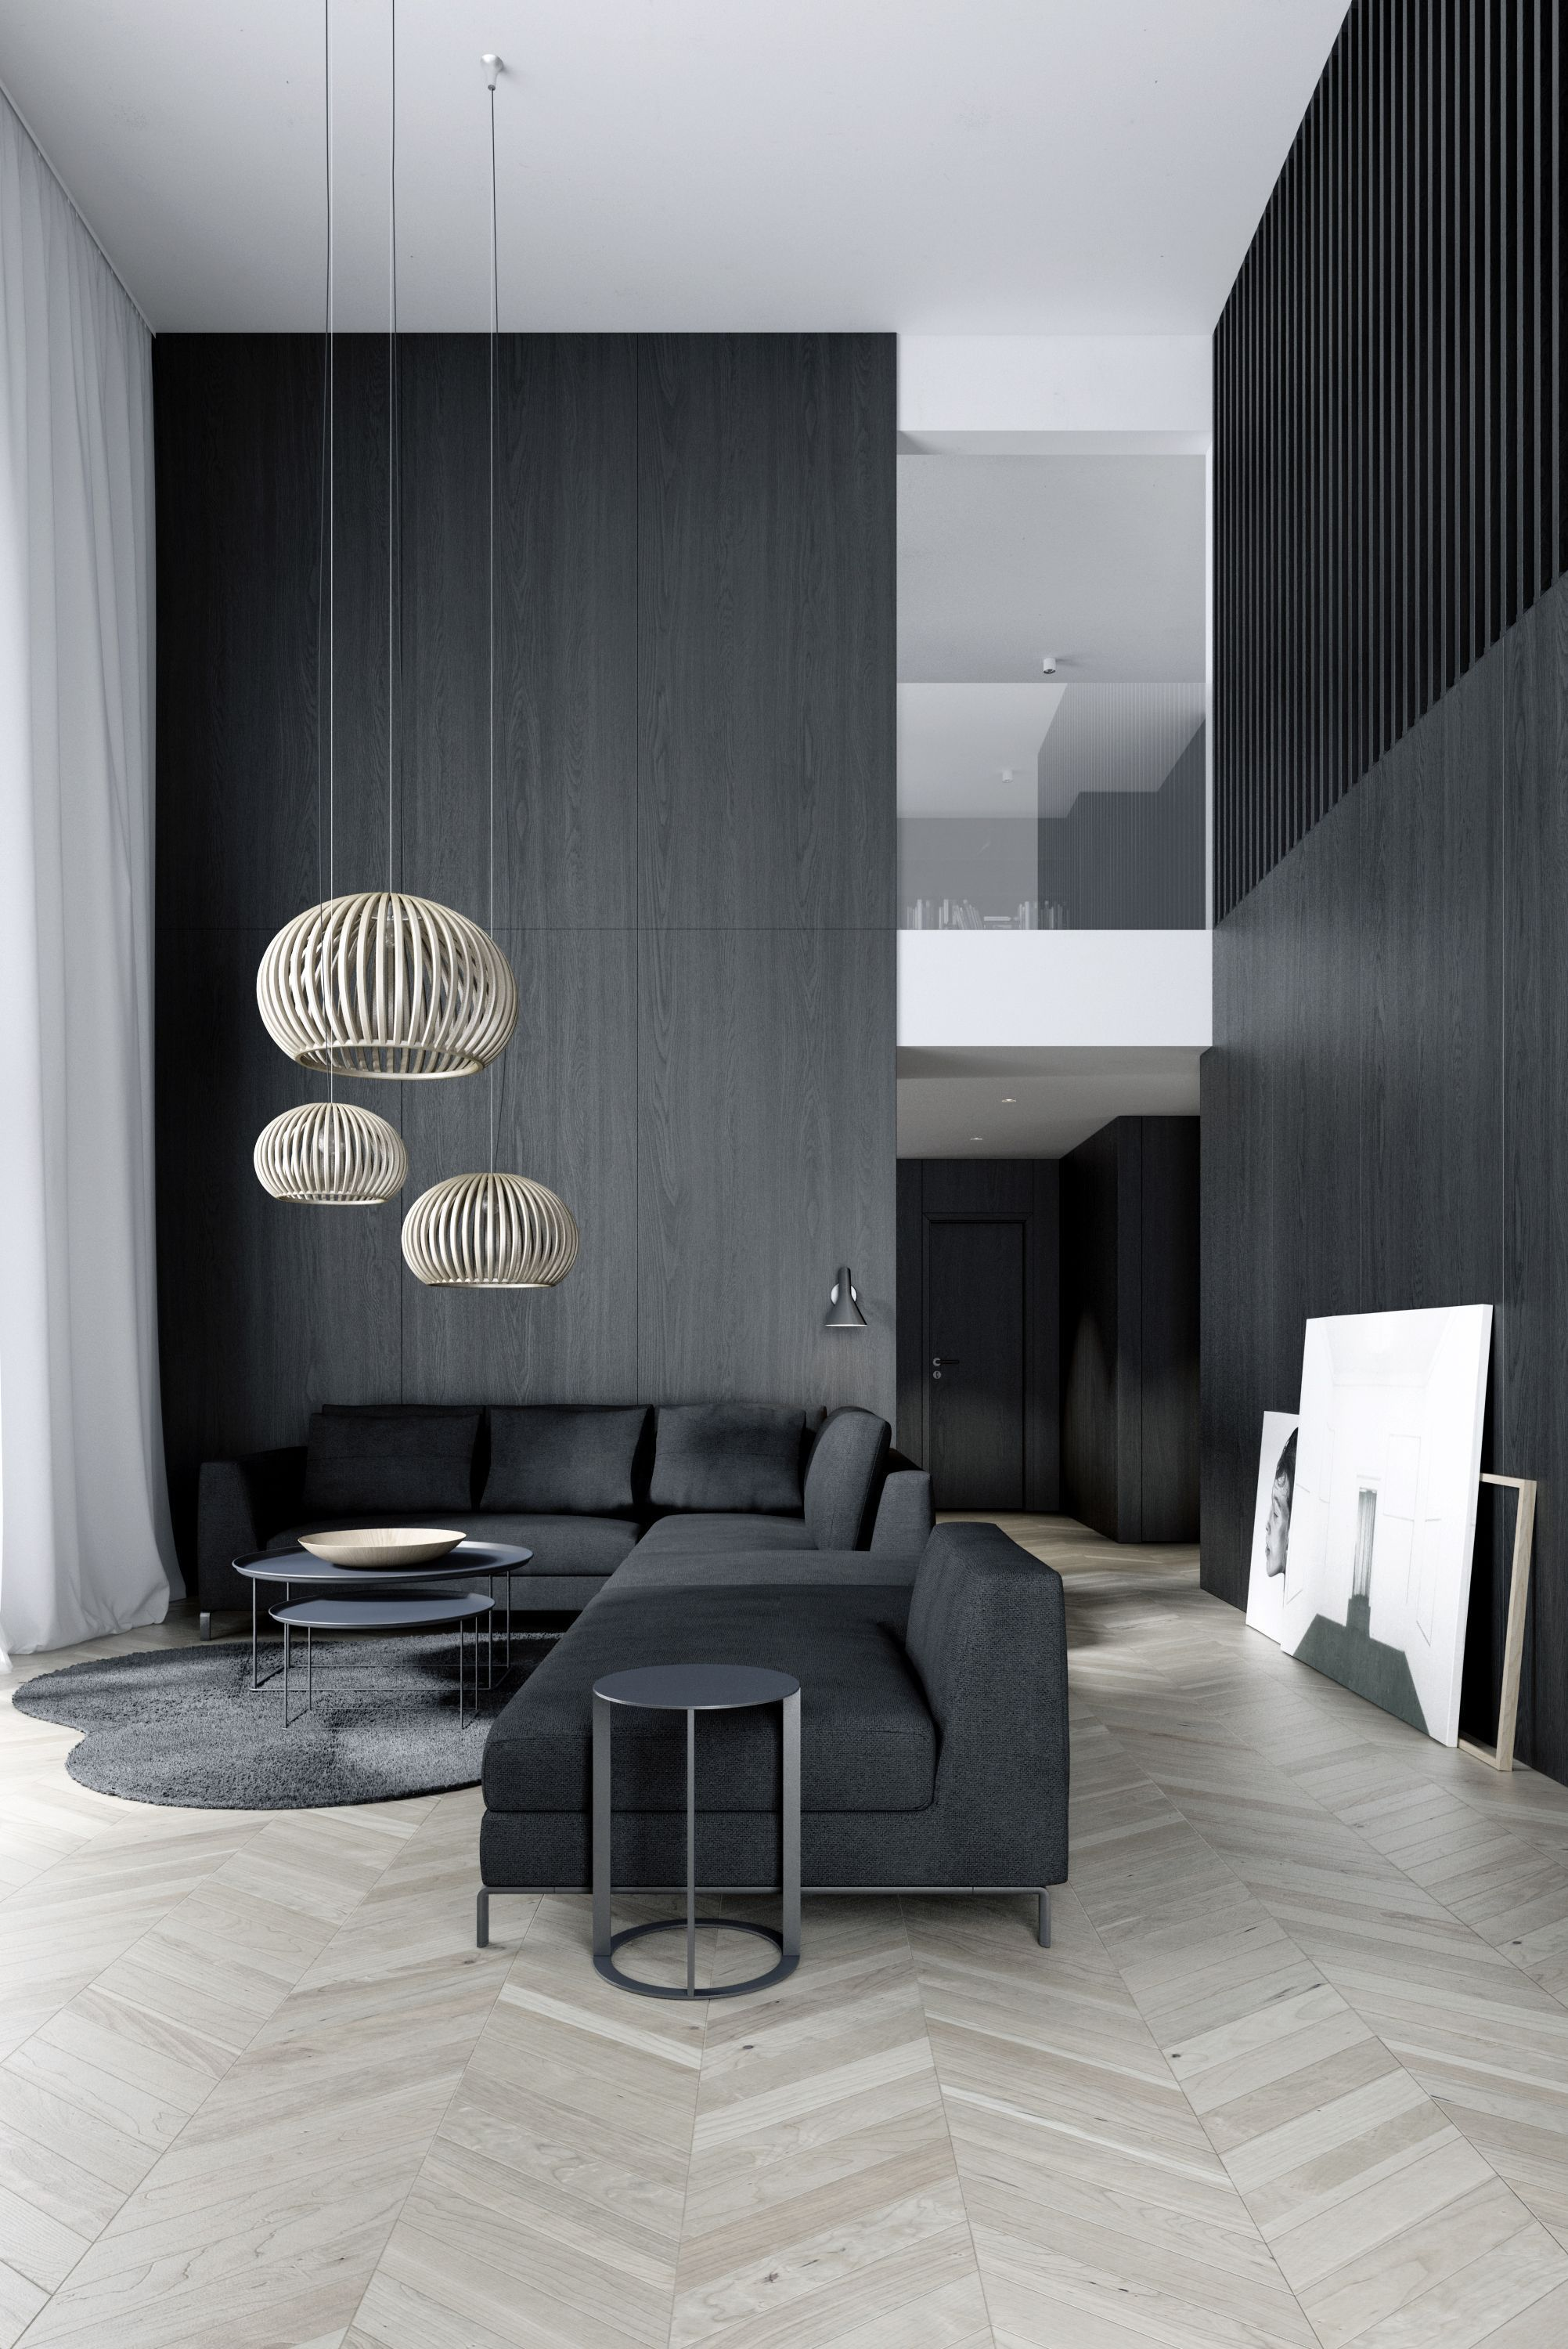 Use Different Textures In Similar Tones A Minimalistic Room With